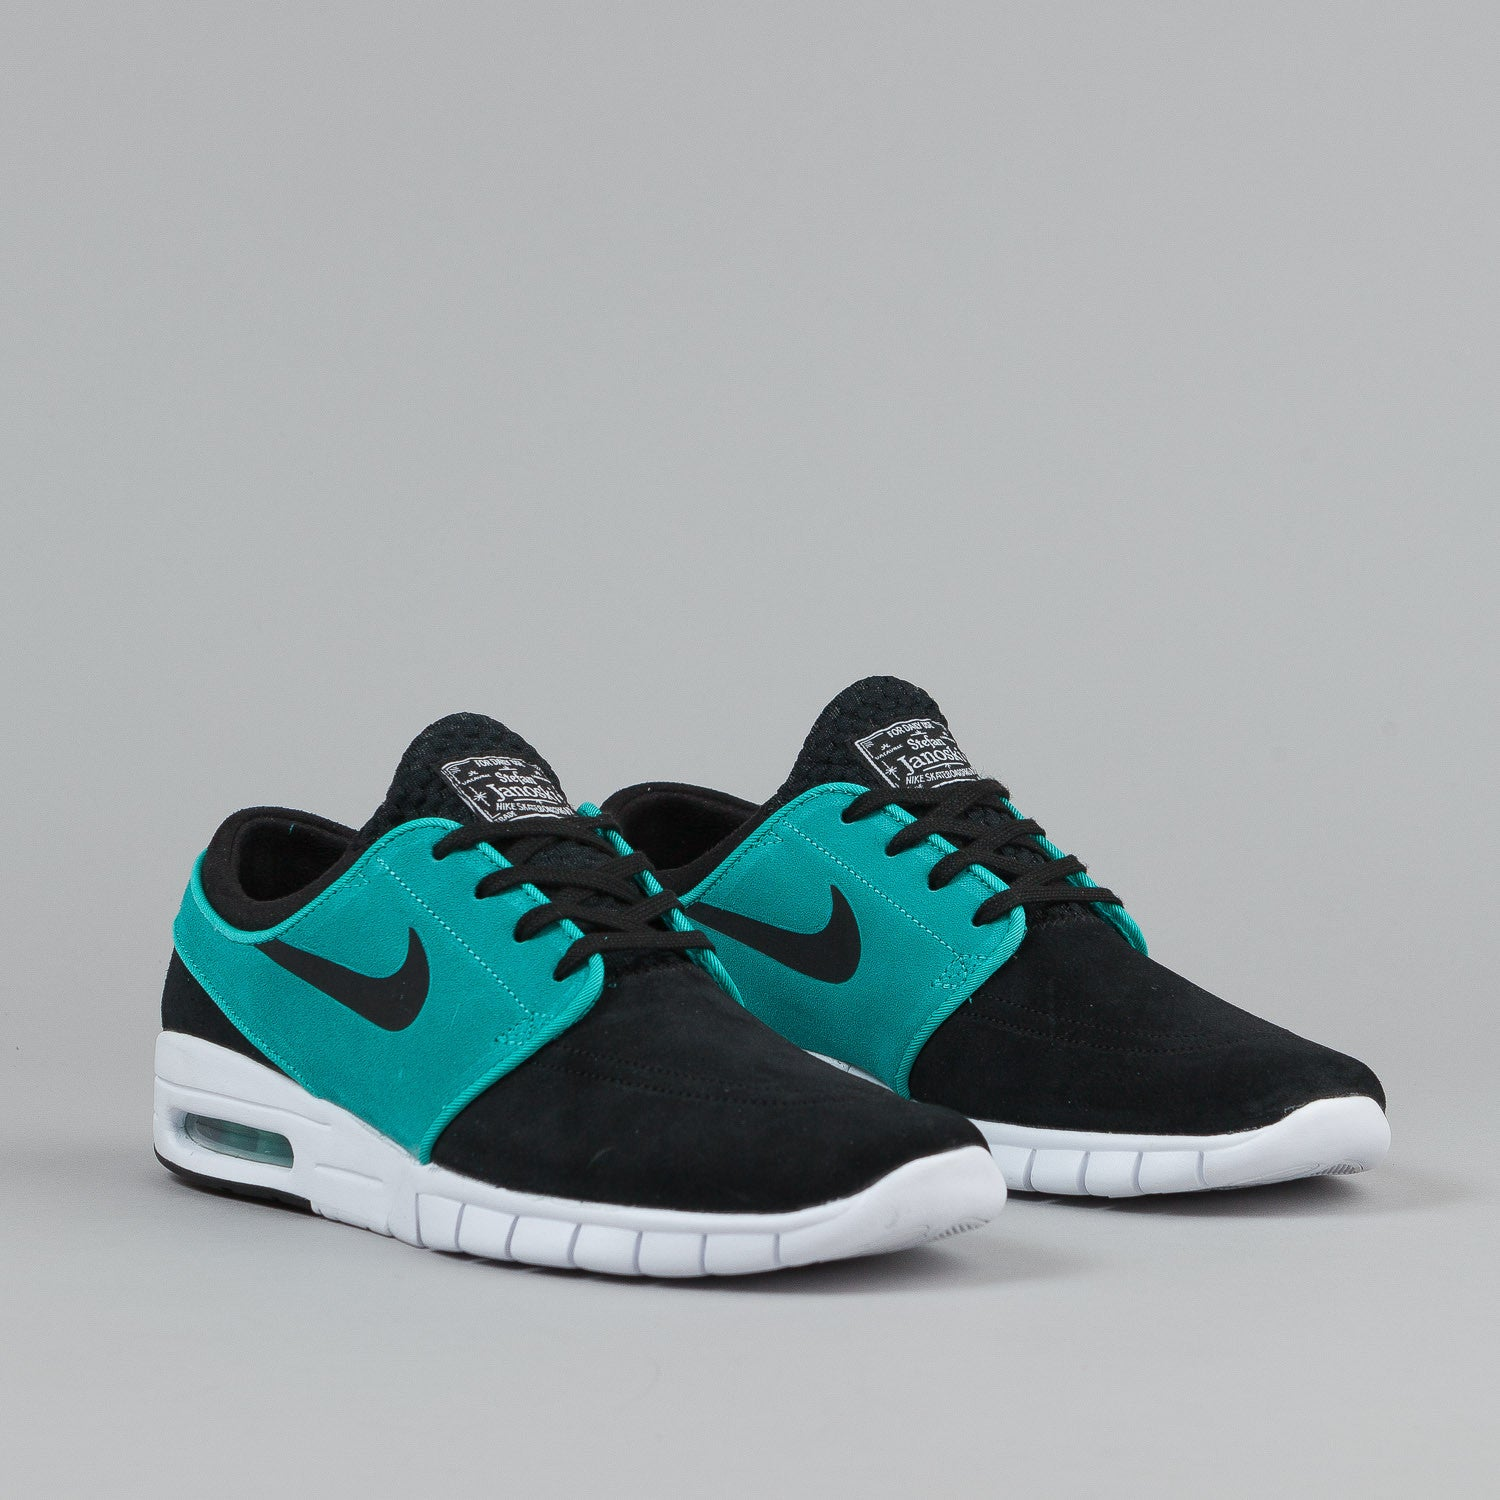 Stefan Janoski Mens Shoes Images For Thin Men